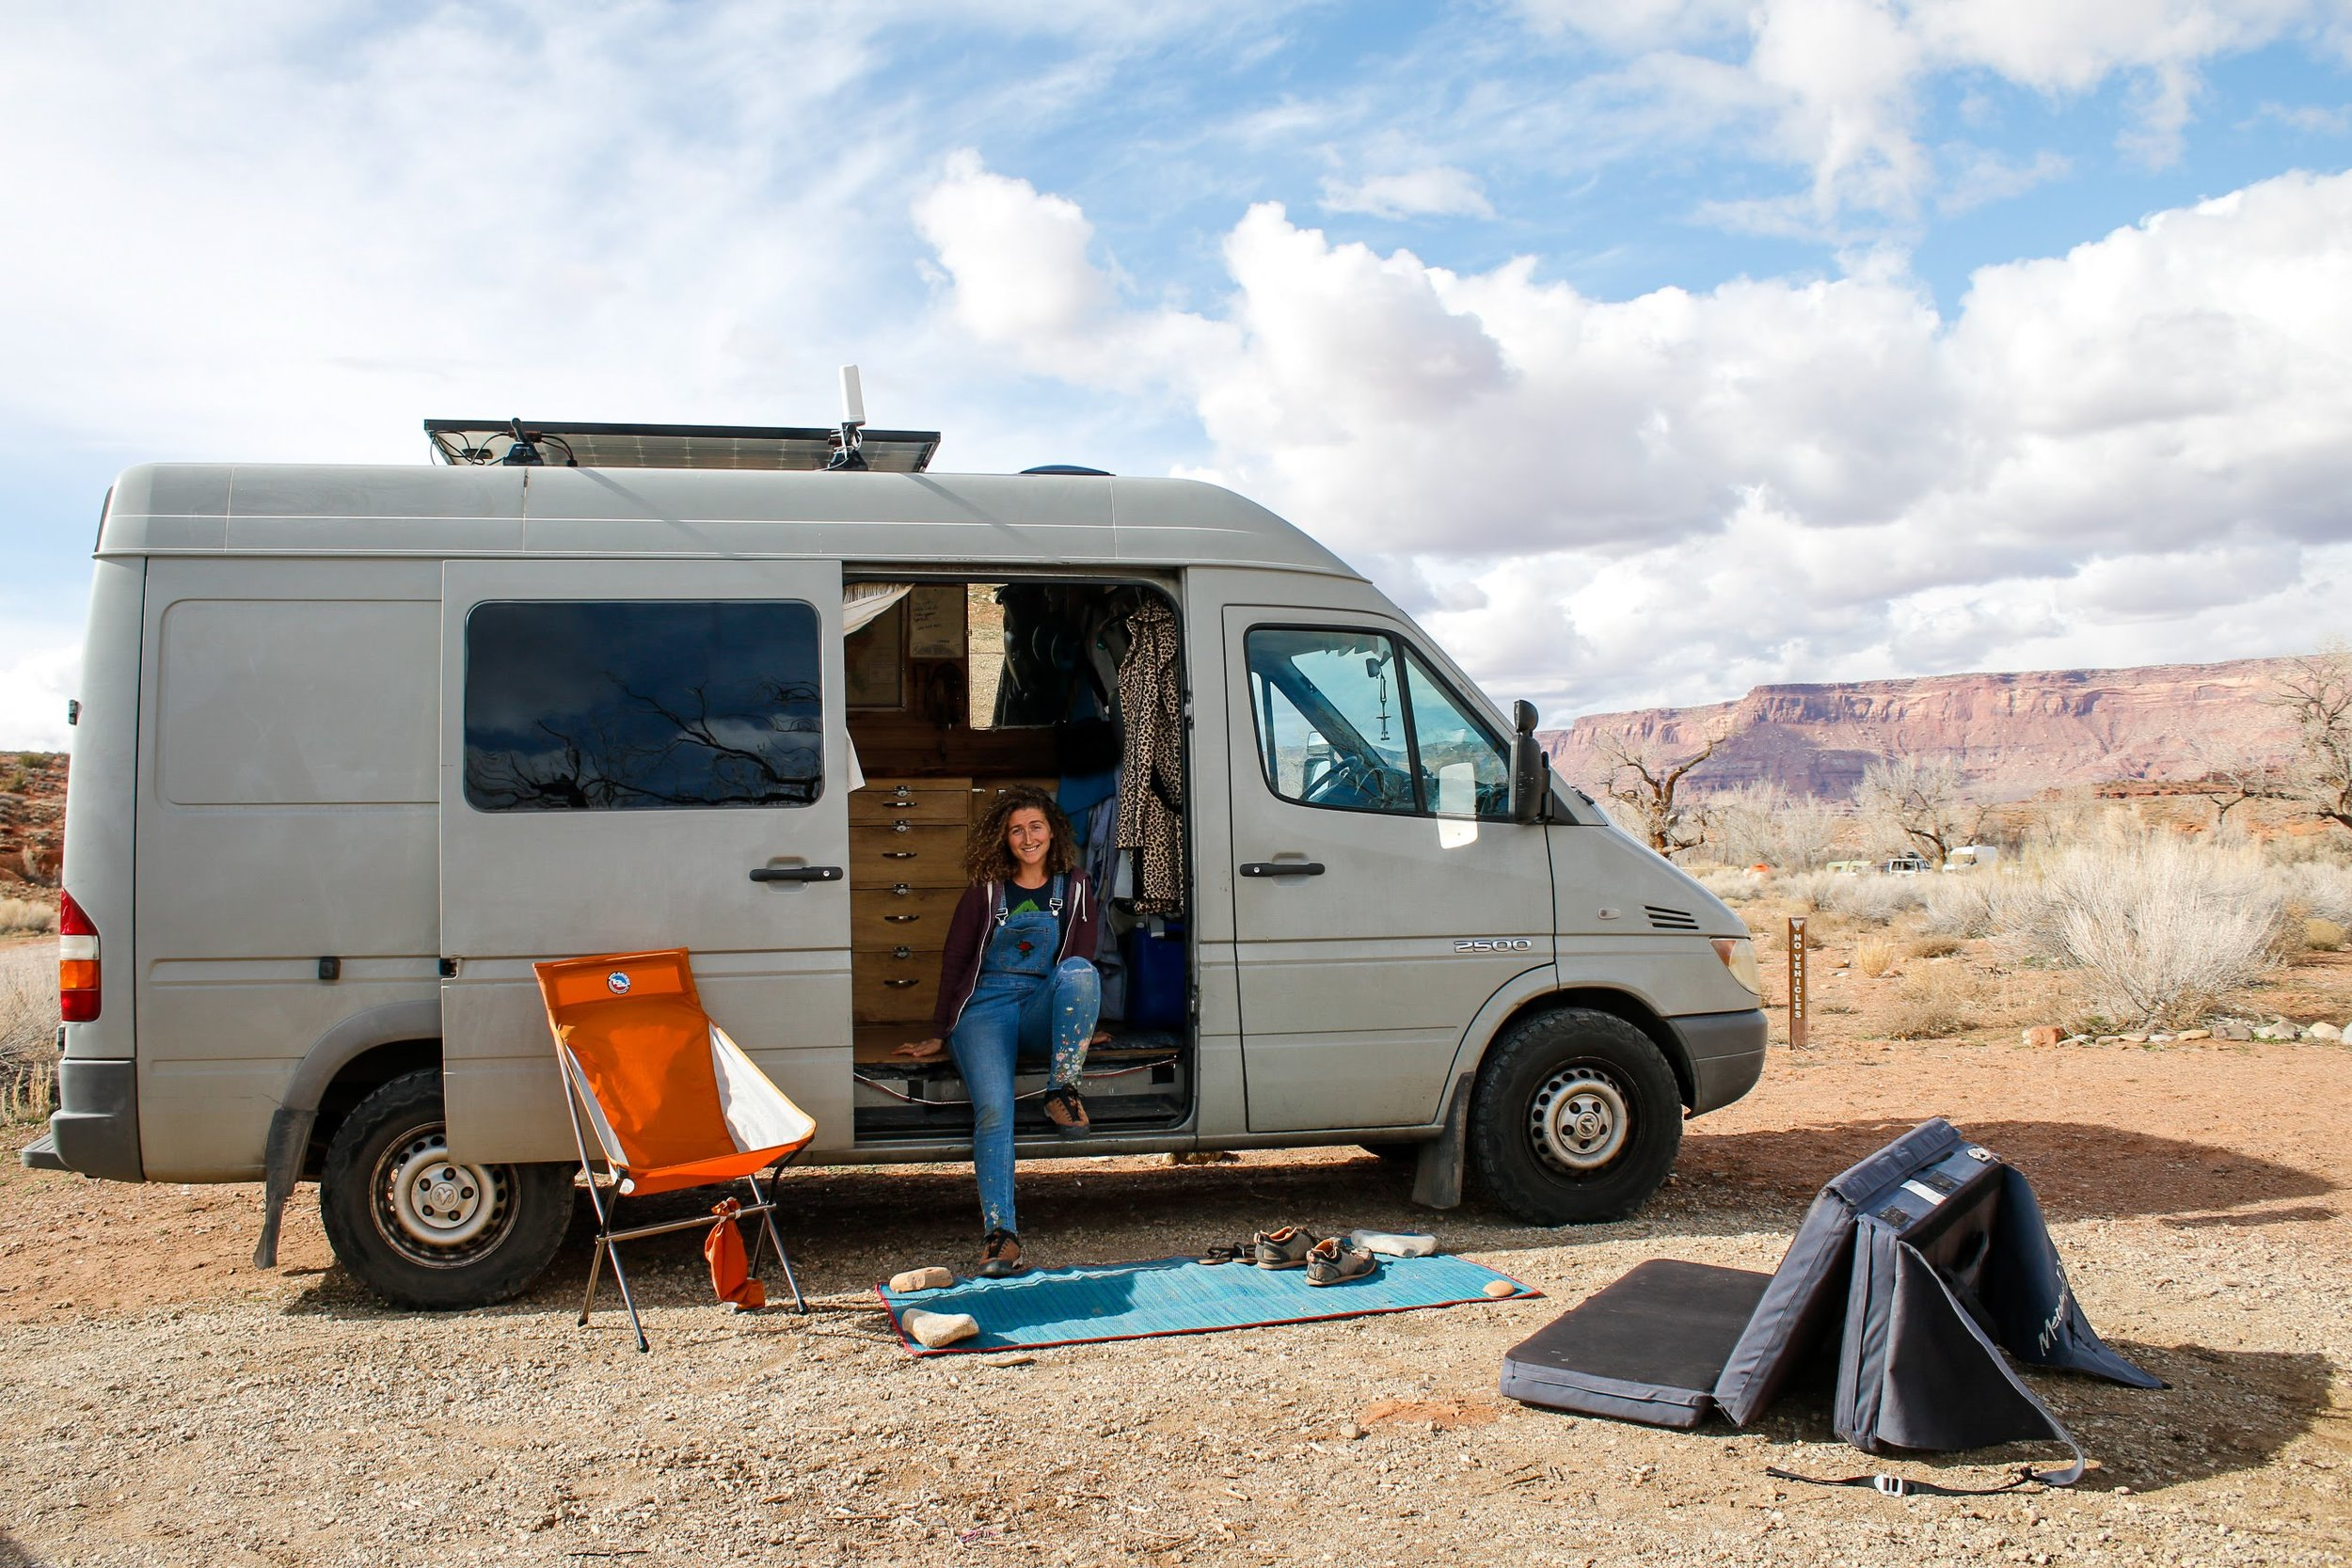 One Chick travels Lyra at Indian Creek Campground